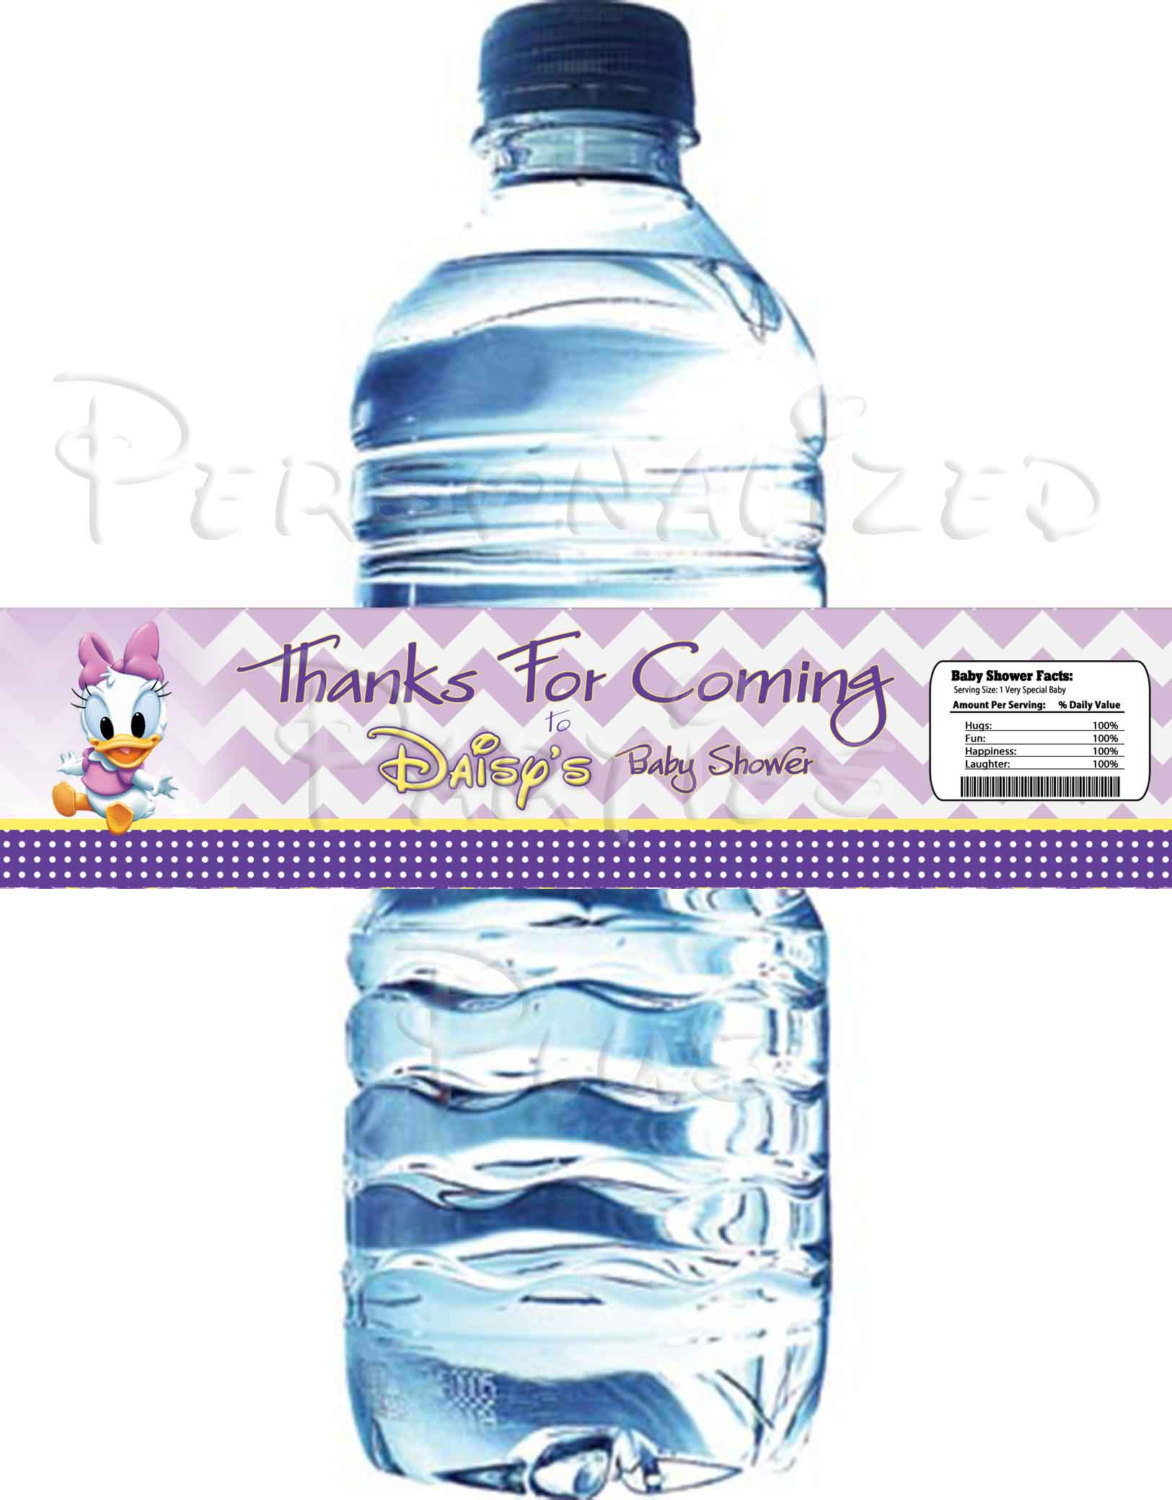 Daisy Duck water bottle labels for baby showers